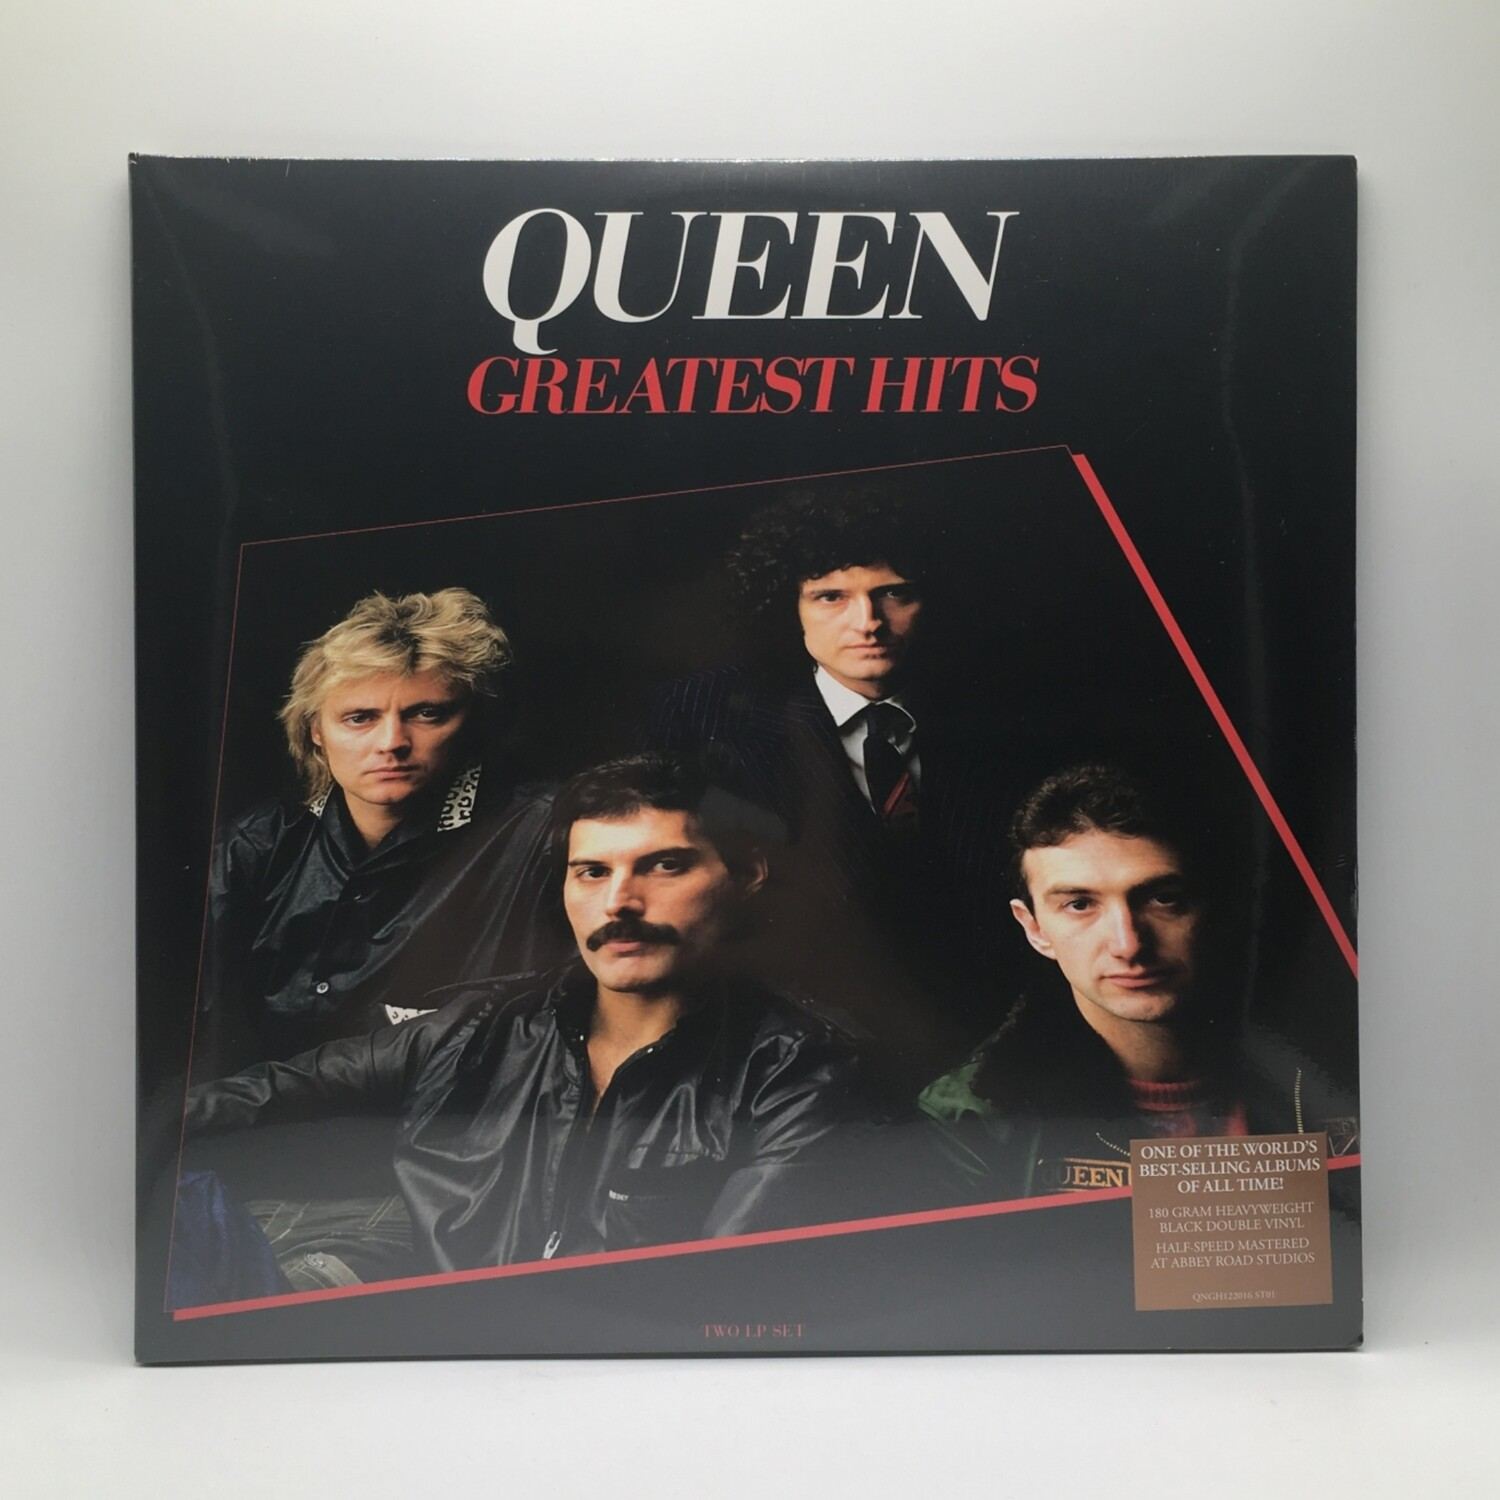 QUEEN -GREATEST HITS: VOL.1- 2XLP (180 GRAM VINYL)